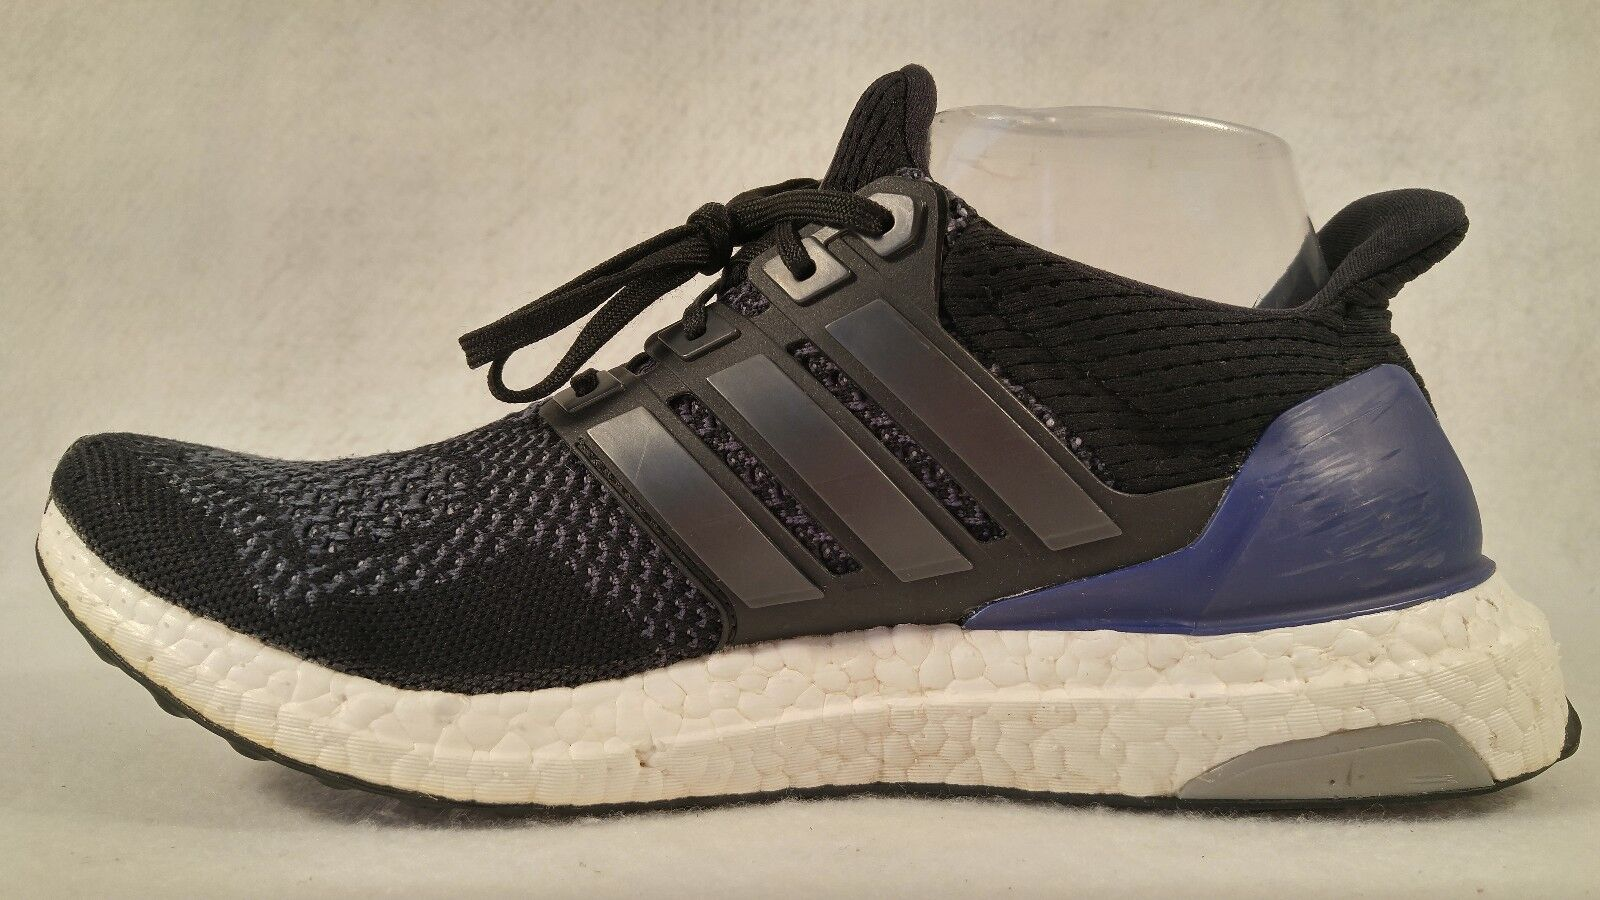 Adidas Ultra Boost 1.0 OG Black Purple Primeknit Primeknit Primeknit B27172 Running shoes Wmn 9 Mn 8 552512